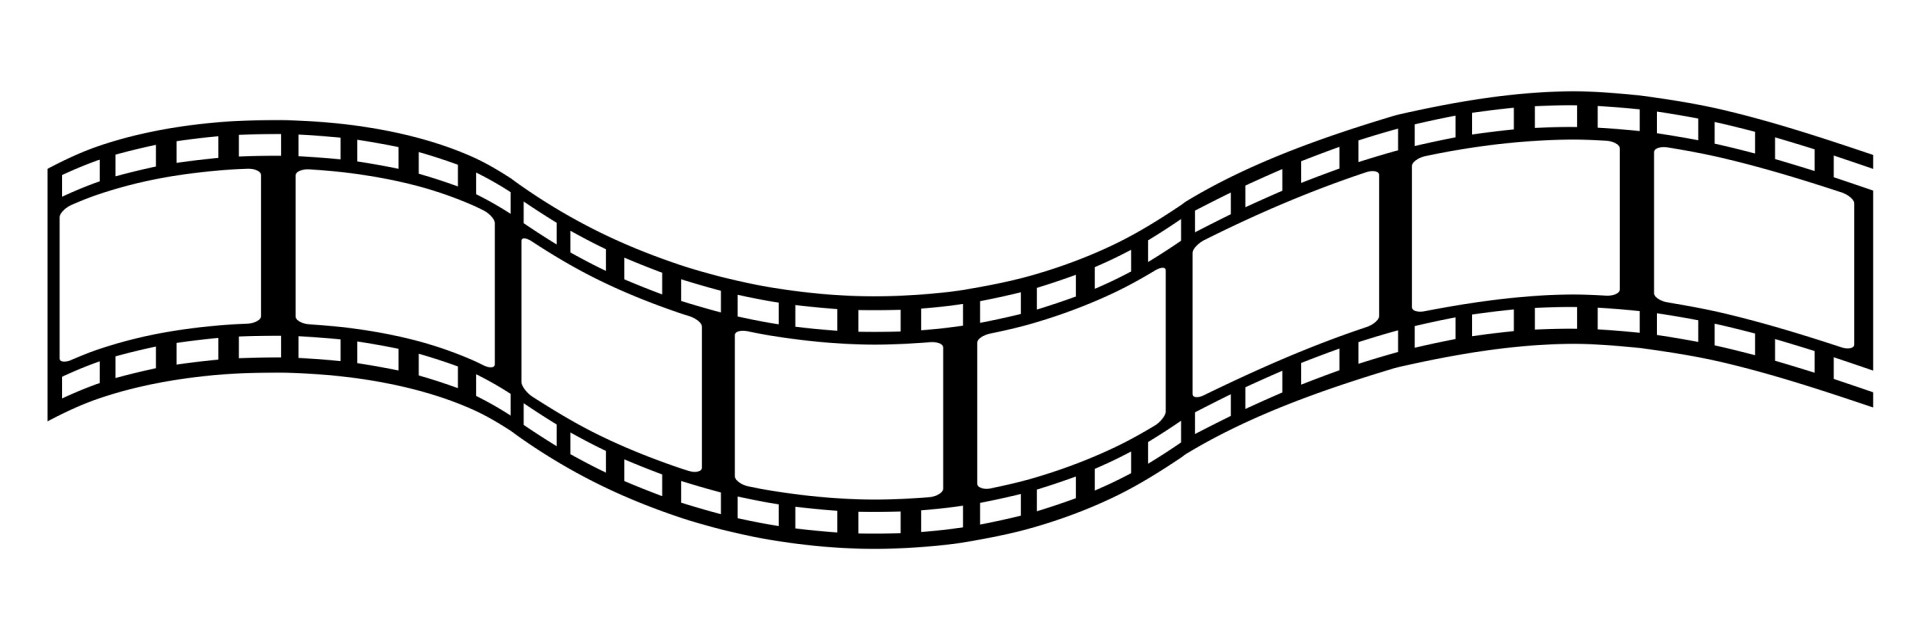 movie reel silhouette at getdrawings com free for personal use rh getdrawings com clipart movie reel movie reel clipart png